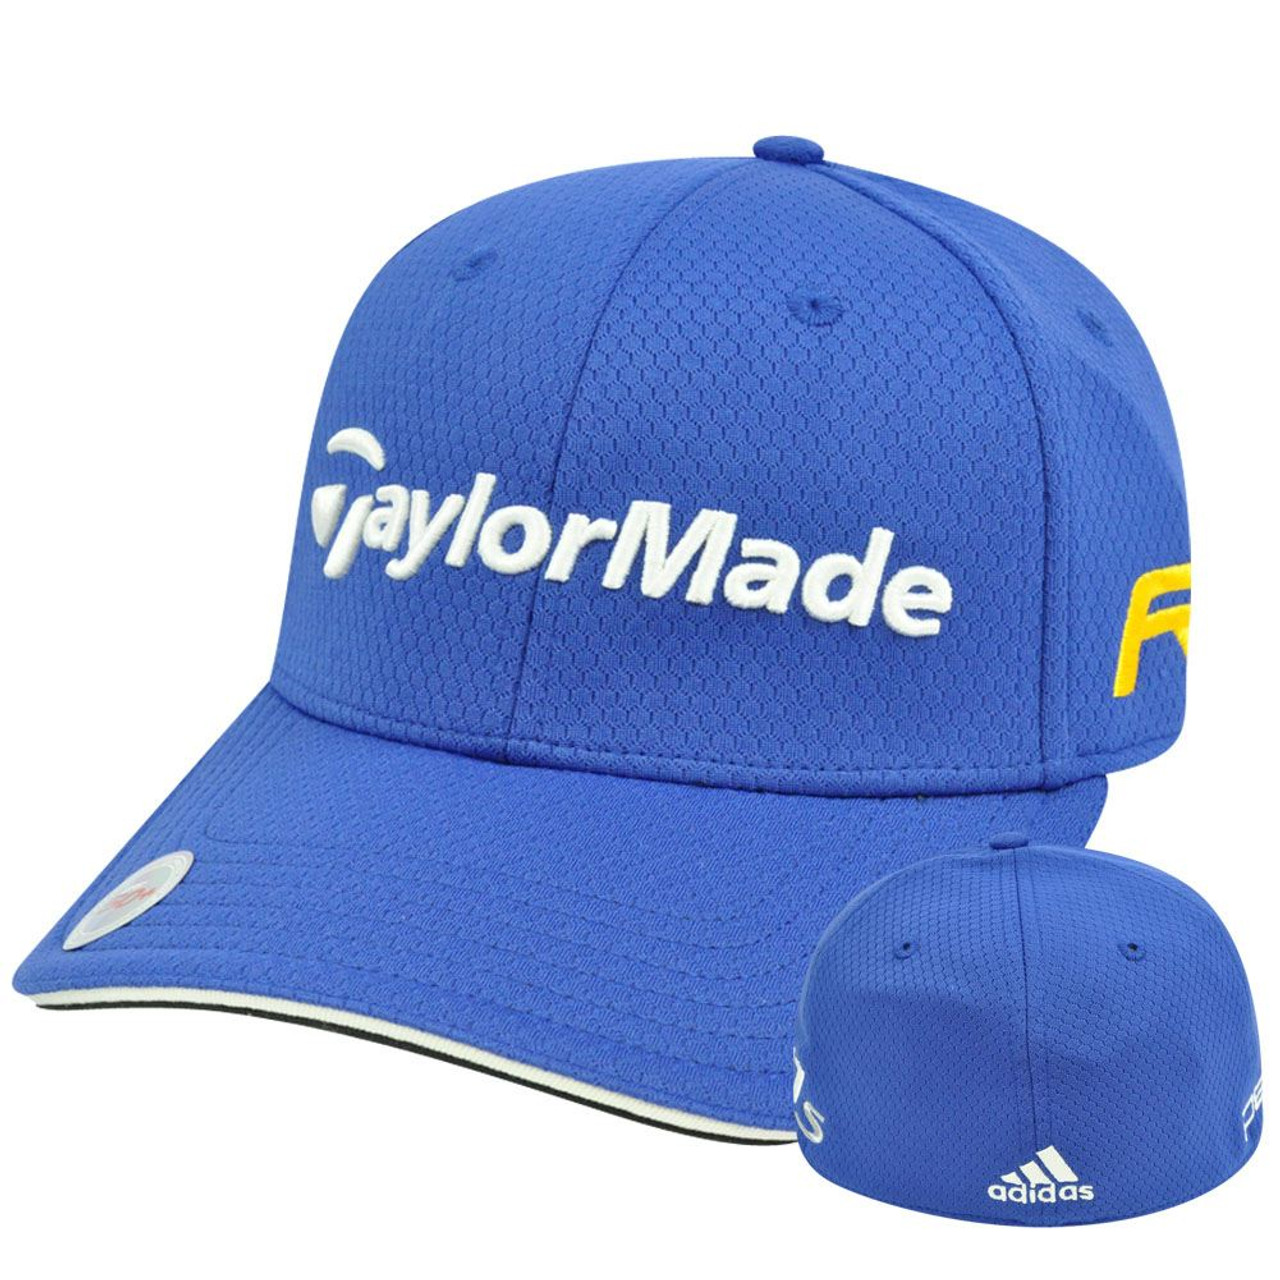 00fdd26e9be9d Adidas Ashworth Golf Hat Cap Penta Taylor Made R11 Blue Stretch Flex Fit  L XL - Cap Store Online.com